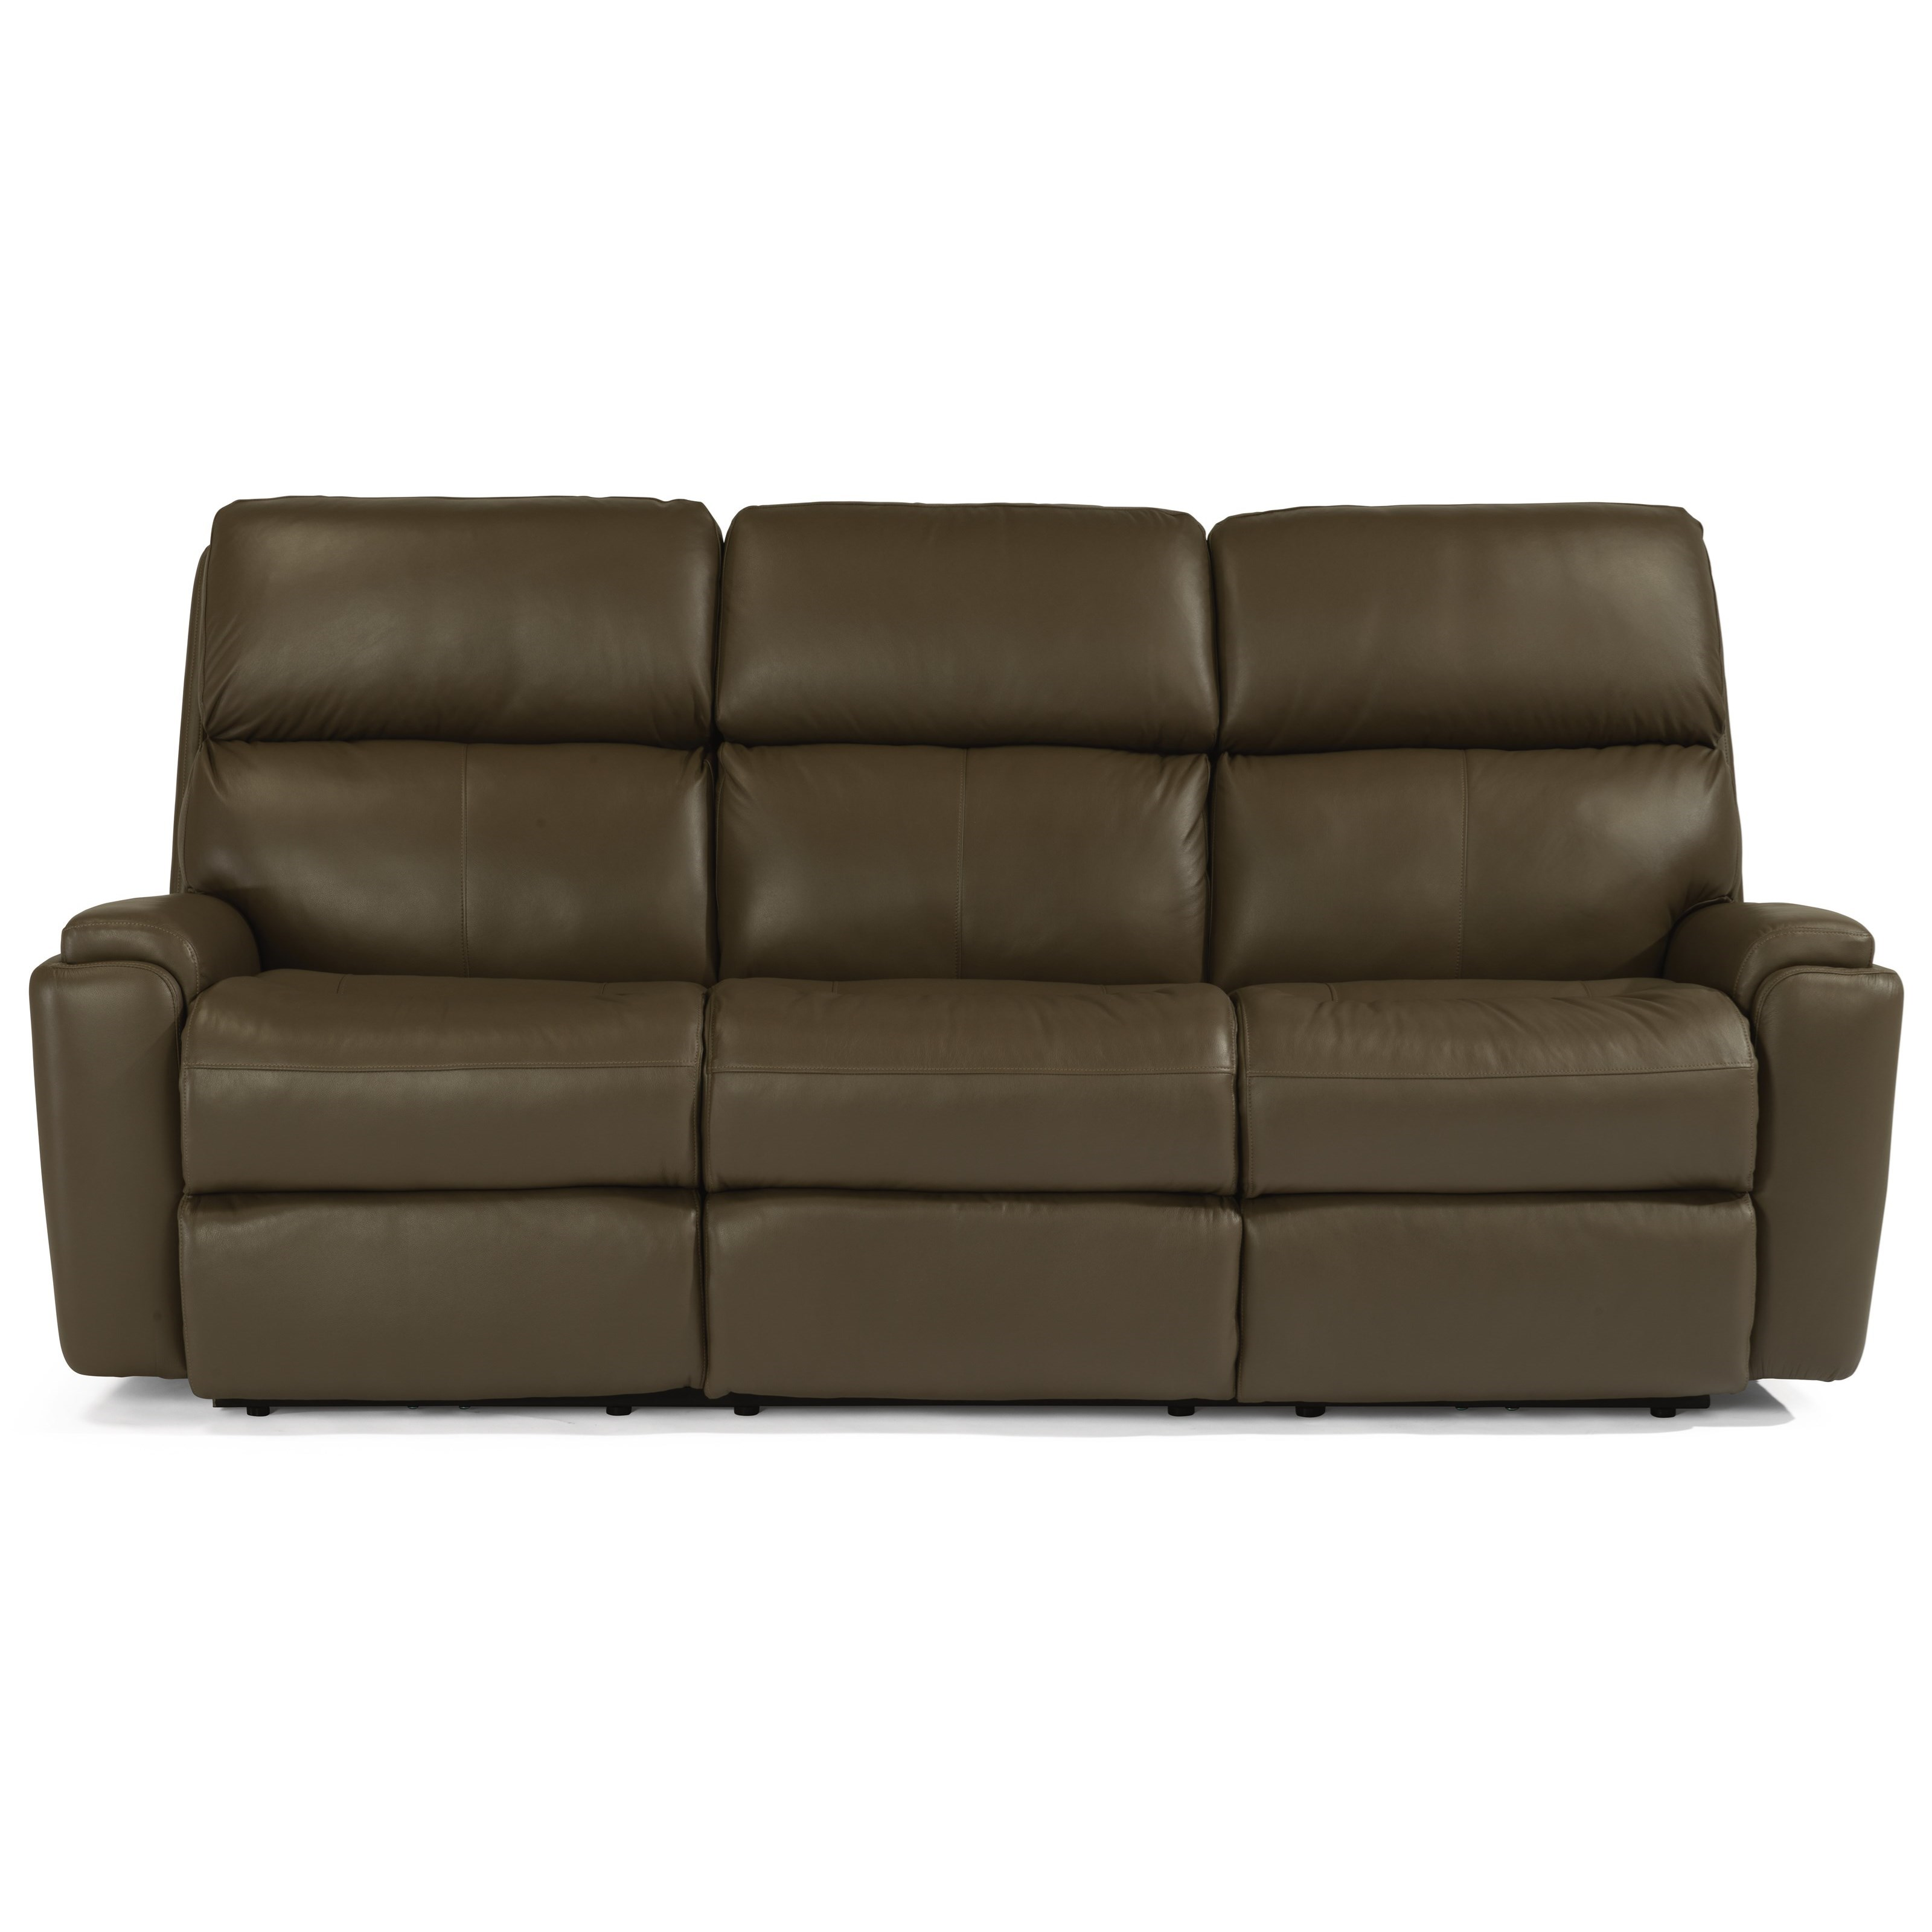 Rio Power Reclining Sofa by Flexsteel at Jordan's Home Furnishings